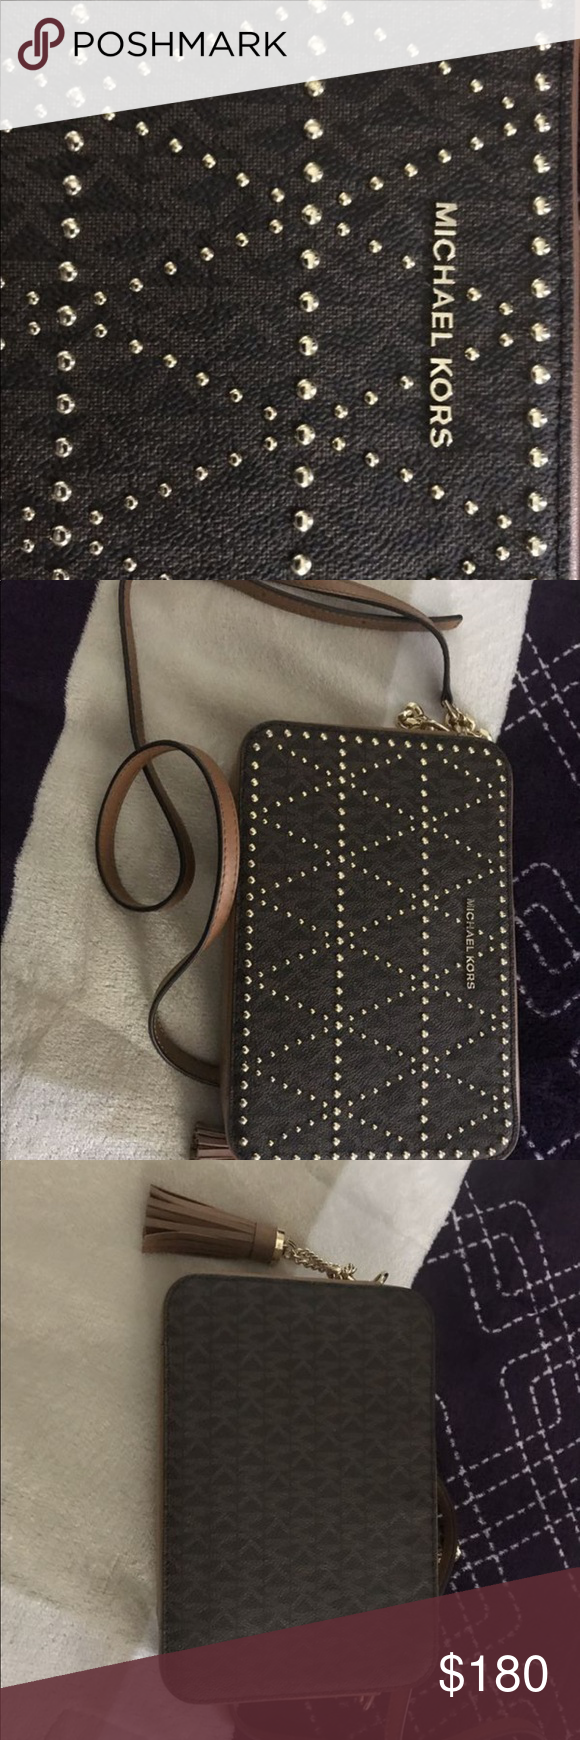 Original MK Camera Purse Brand new ... brown with gold accents ... never used it Michael Kors Bags Mini Bags #camerapurse